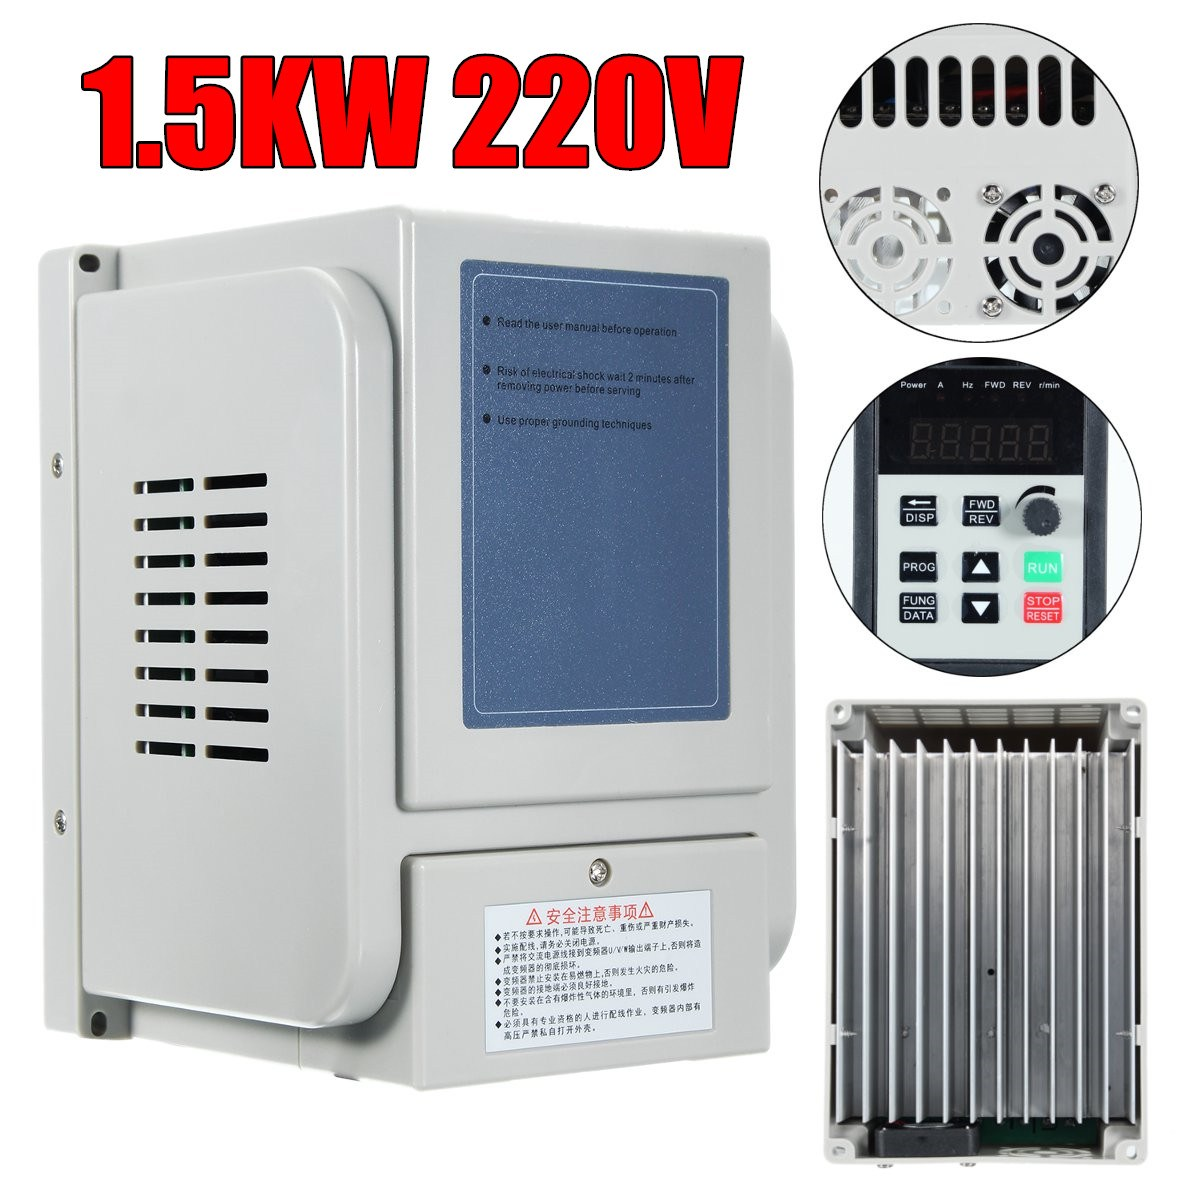 Brand New 1.5KW 2HP 8A 220V AC Single Phase Variable Frequency Drive Inverter VFD new variable frequency drive vfd inverter 1 5kw 2hp 220v 7a 1 5kw inverter with potentiometer knob 220v ac